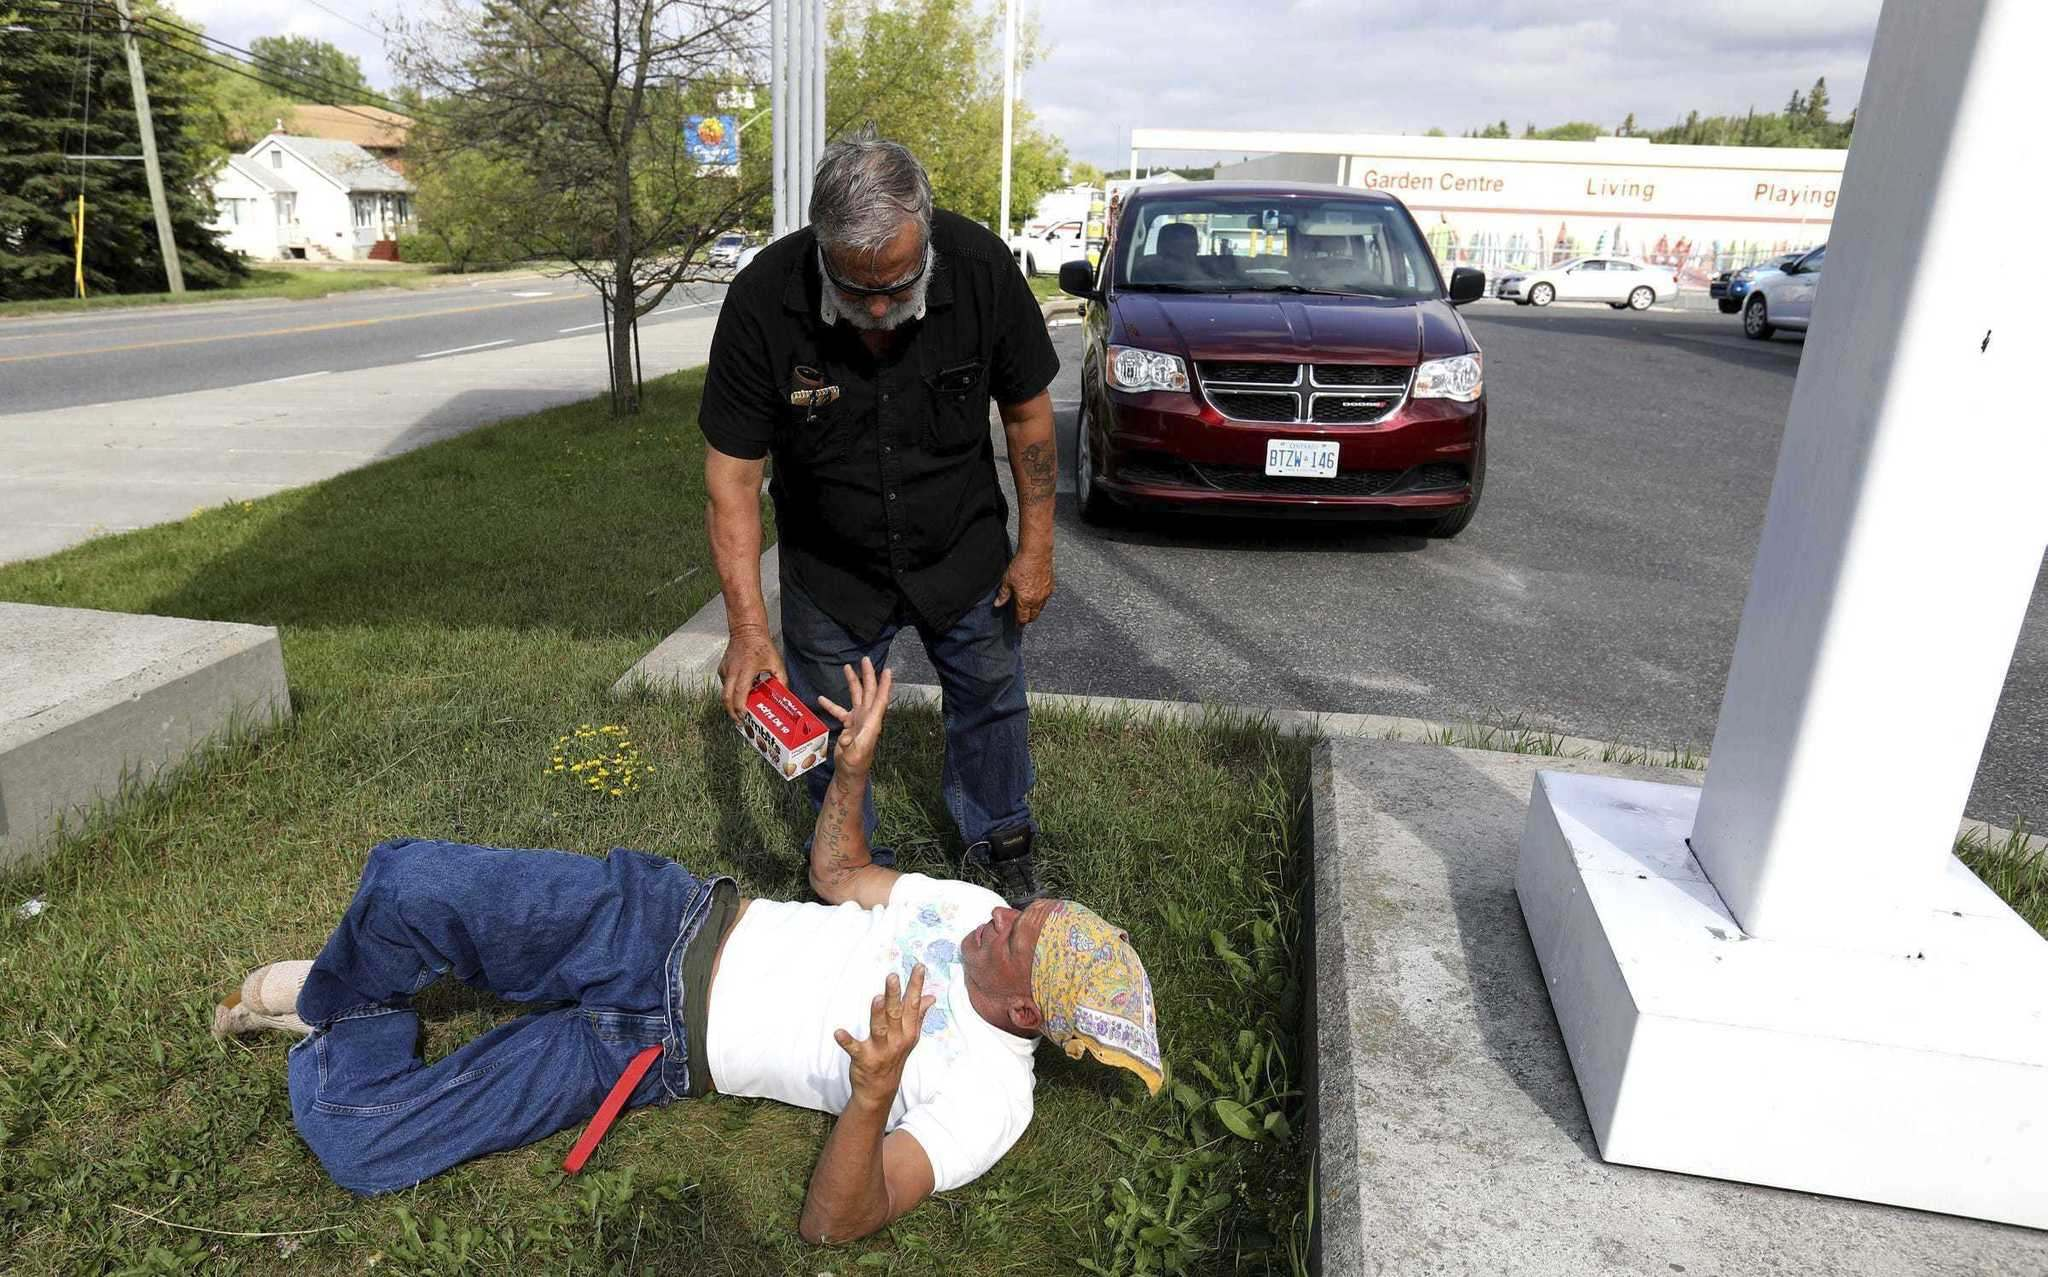 ERIC SEALS / DETROIT FREE PRESS / TNS</p><p>Joe Murphy often returns to sleep underneath the Canadian Tire gas station sign.